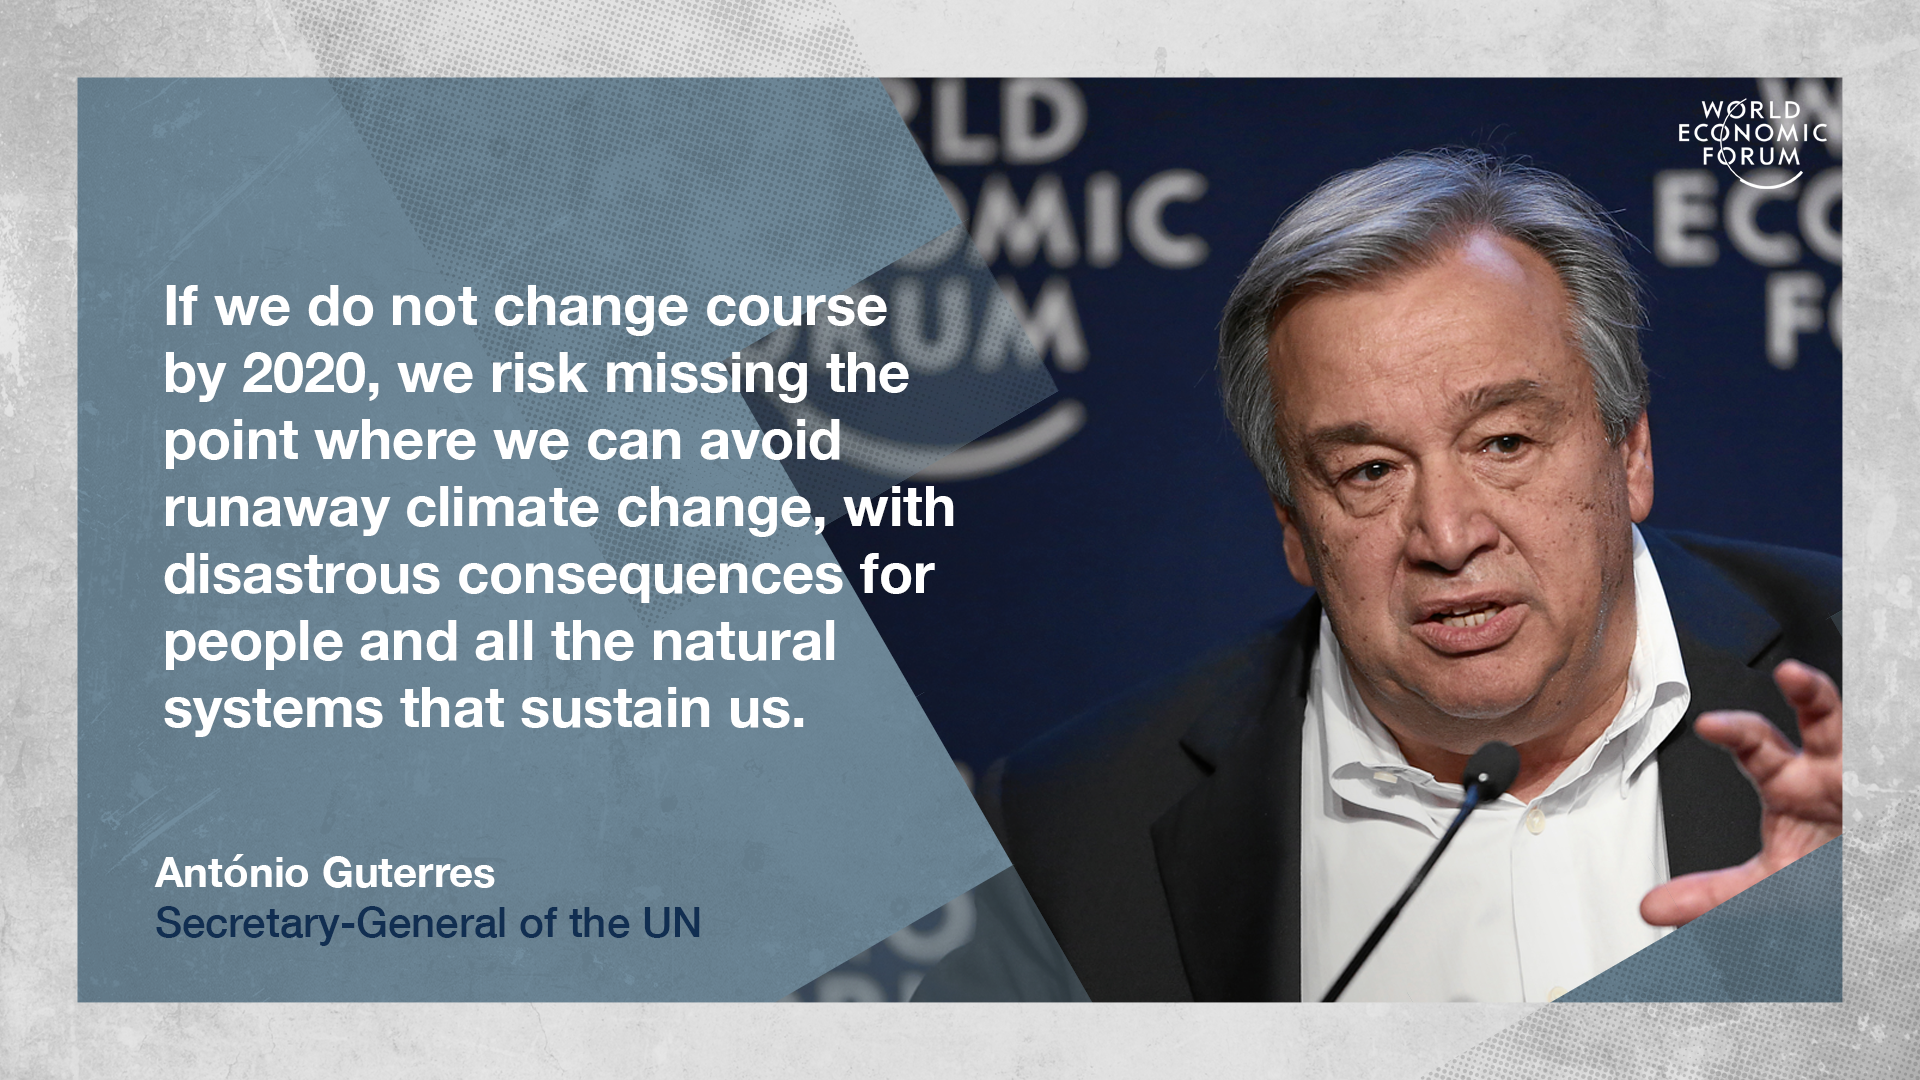 Antonio guterres in a special address to the meeting on thursday morning will build on attenboroughs message by doubling down on his recent stark climate